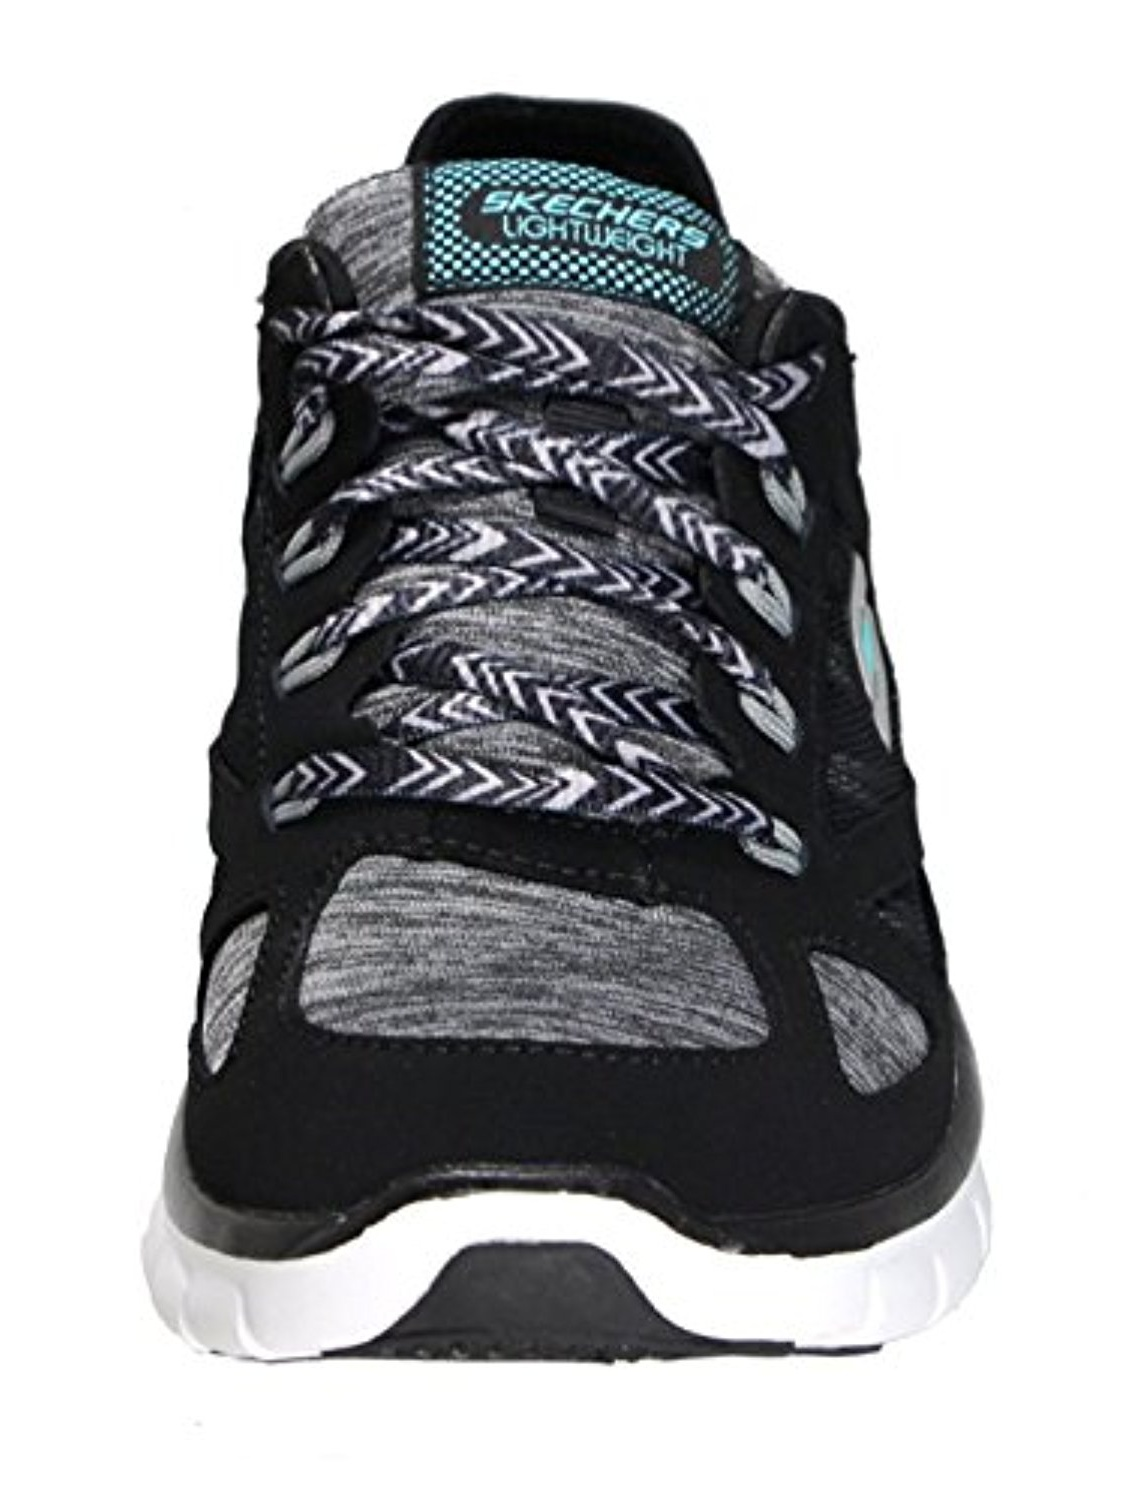 Skechers Synergy Statuesque Women's Casual Sneakers, Black/White, 9 US